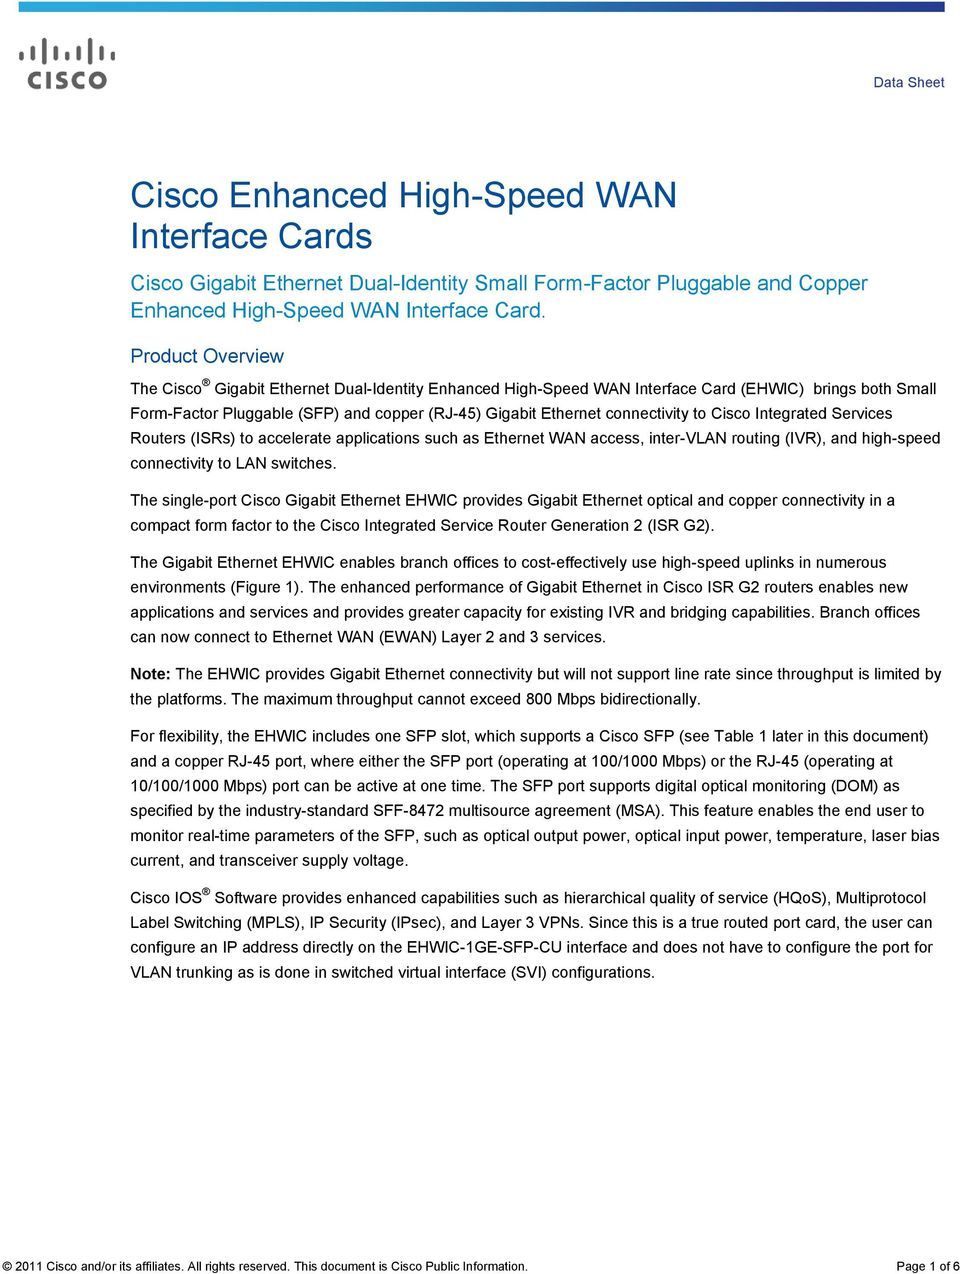 to Cisco Integrated Services Routers (ISRs) to accelerate applications such as Ethernet WAN access, inter-vlan routing (IVR), and high-speed connectivity to LAN switches.